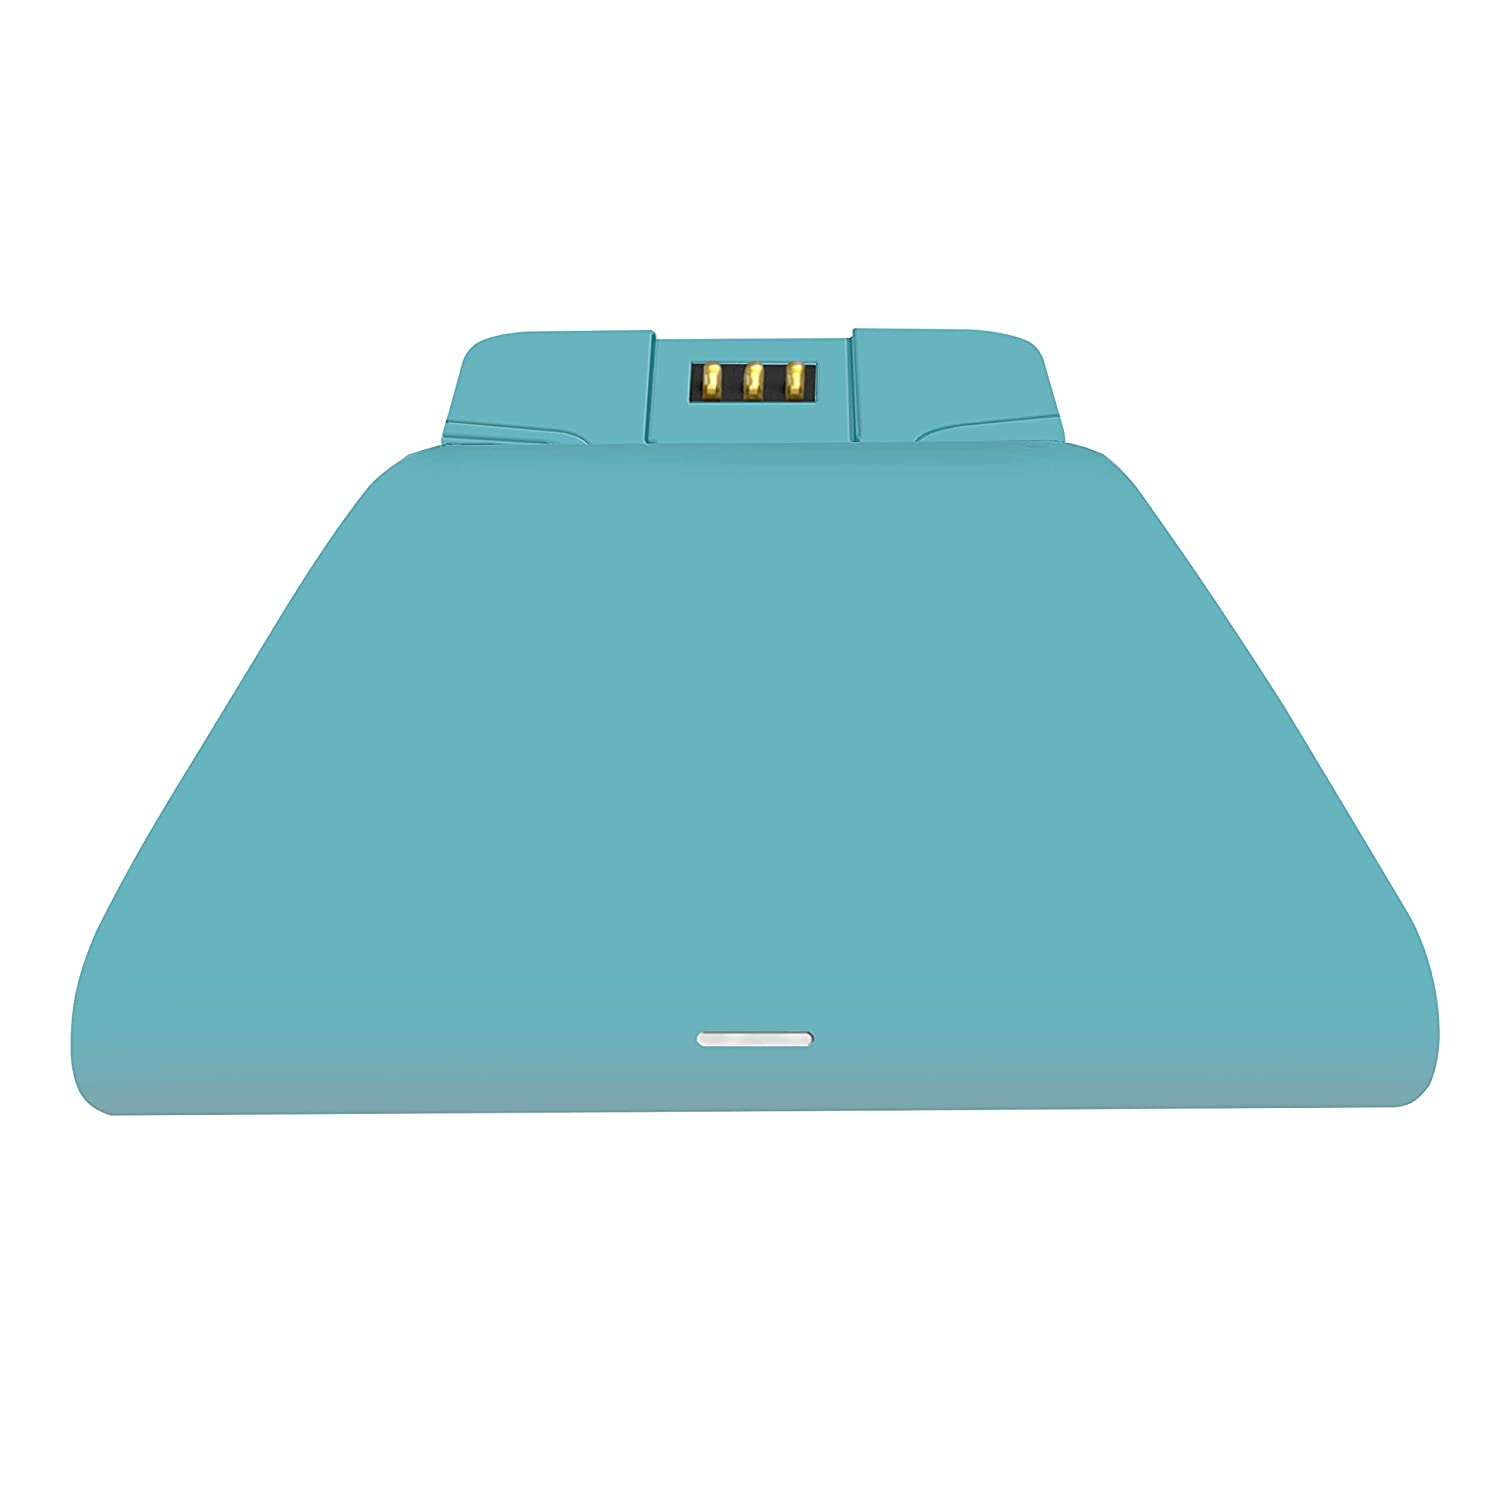 Controller Gear Xbox Pro Charging Stand Glacier Blue Controller Sold Separately Xbox One - Xbox One